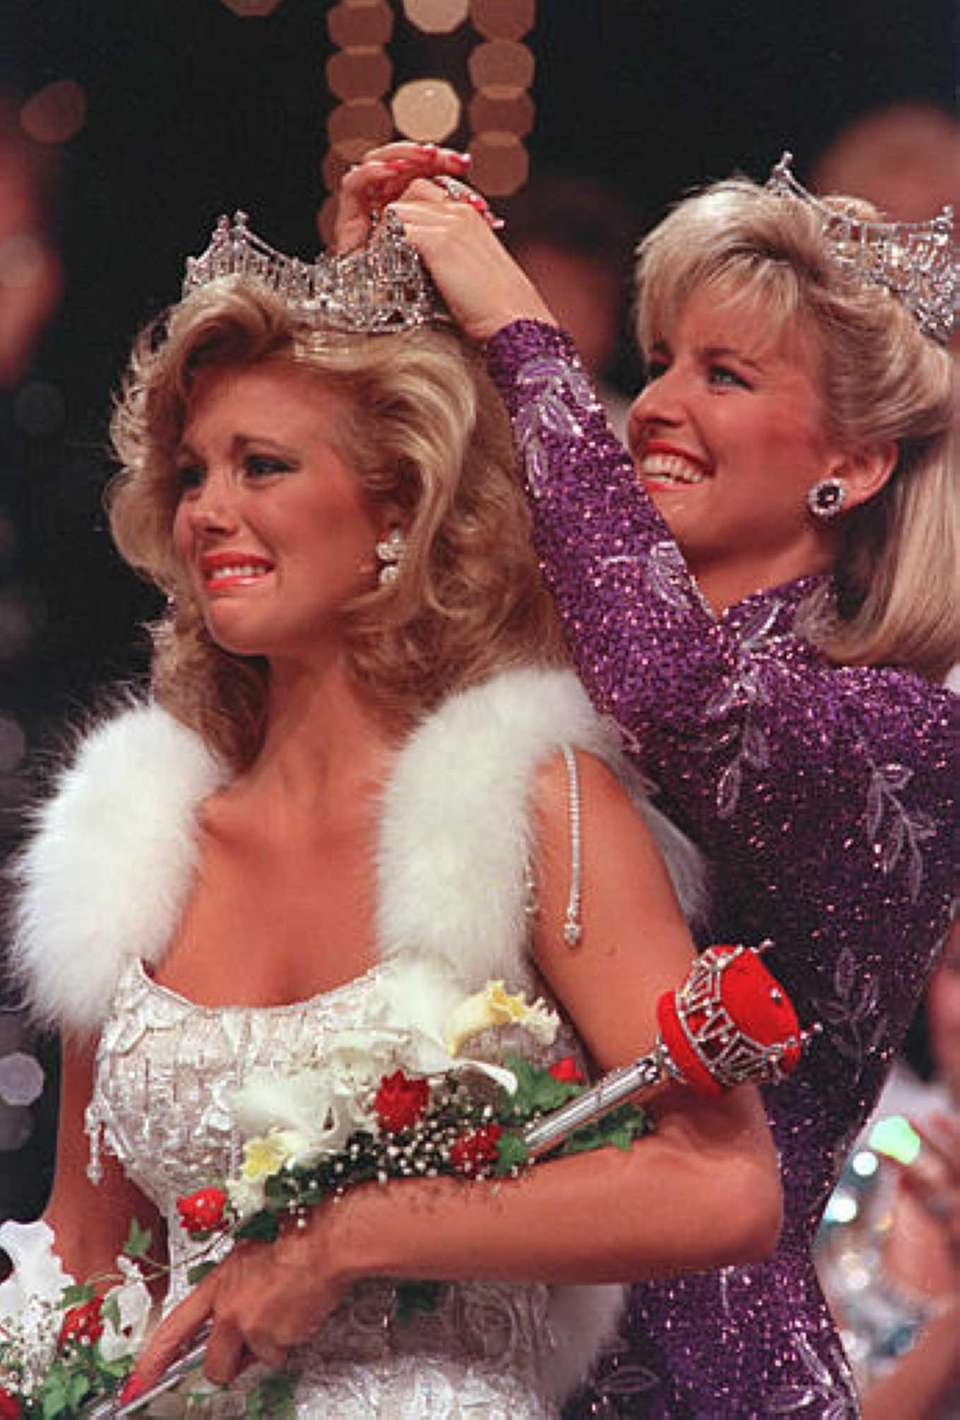 Susan Akin, of Meridian, Miss., is crowned Miss